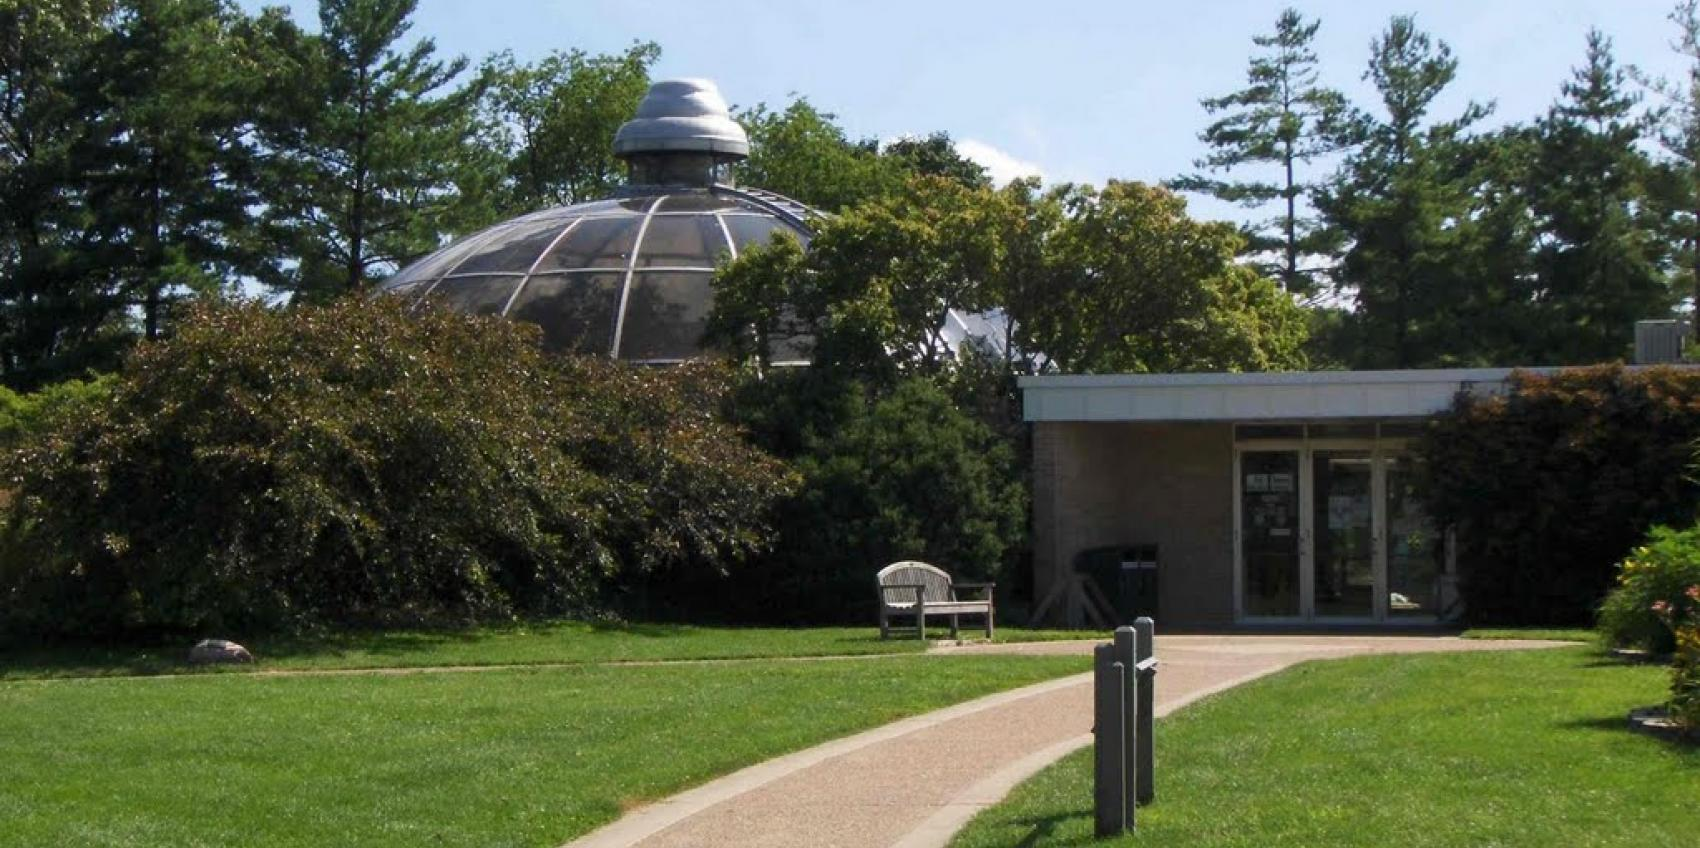 The Washington Park Botanical Garden, One Of Central Illinoisu0027 Major  Horticultural Attractions, Is Located On 20 Acres Of The Northwest Corner  Of Historic ...